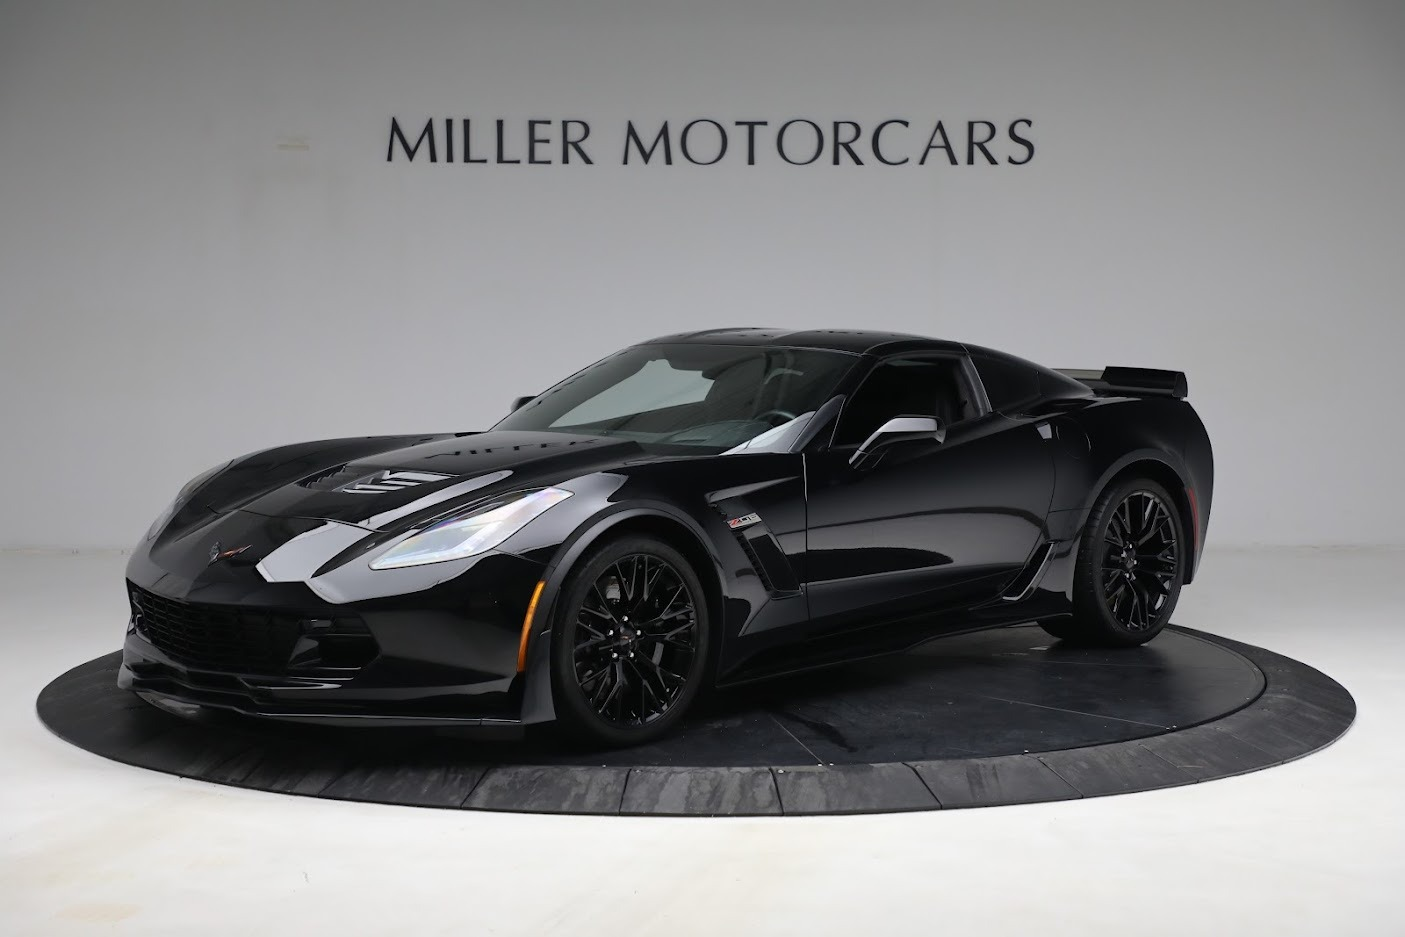 Used 2016 Chevrolet Corvette Z06 for sale $85,900 at Rolls-Royce Motor Cars Greenwich in Greenwich CT 06830 1